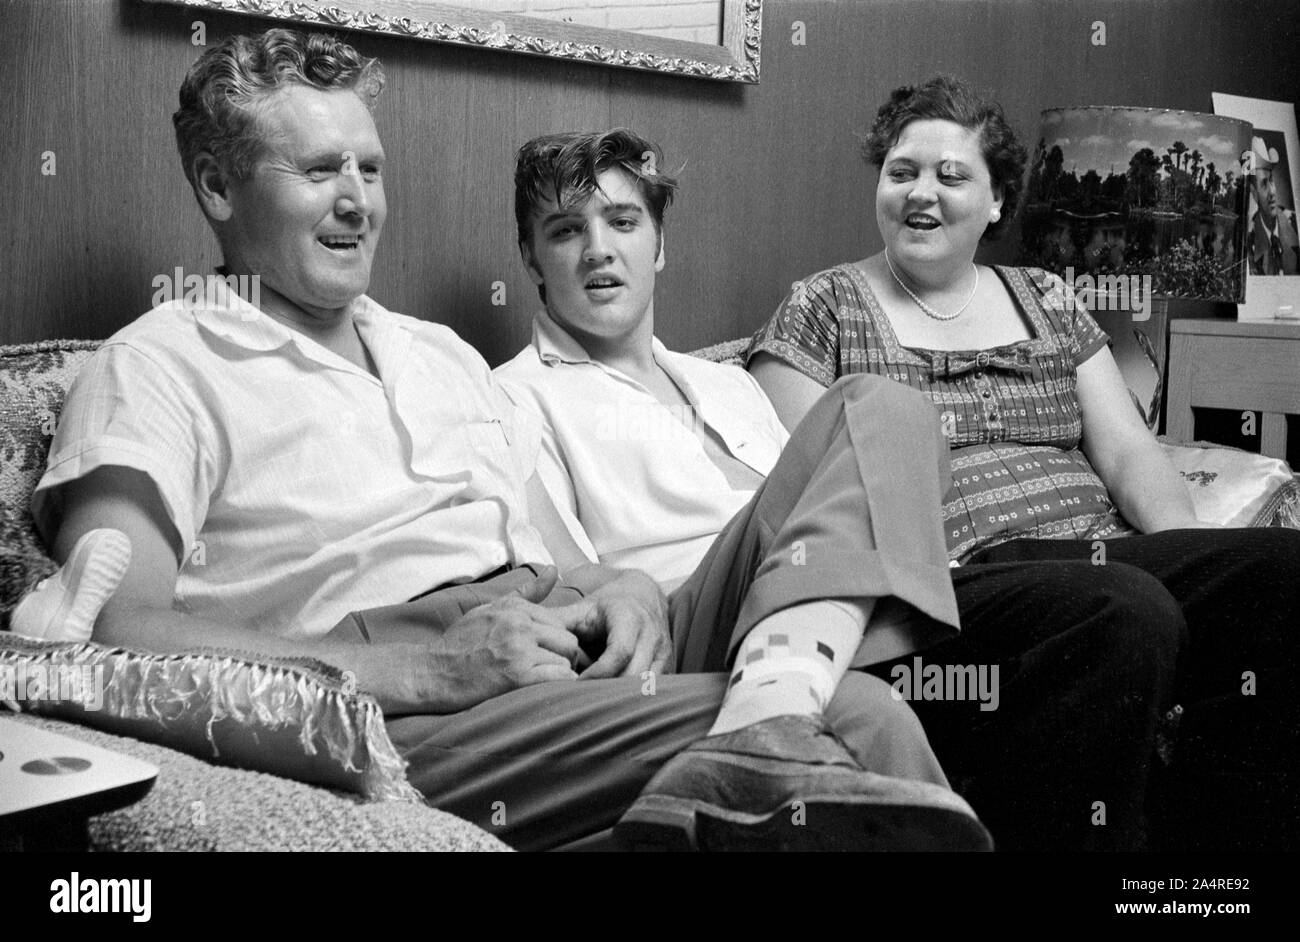 Elvis Presley with his father, Vernon, and his mother Gladys Presley, in the living room at 1034 Audubon Drive, Memphis, Tennessee, May 29, 1956 Stock Photo